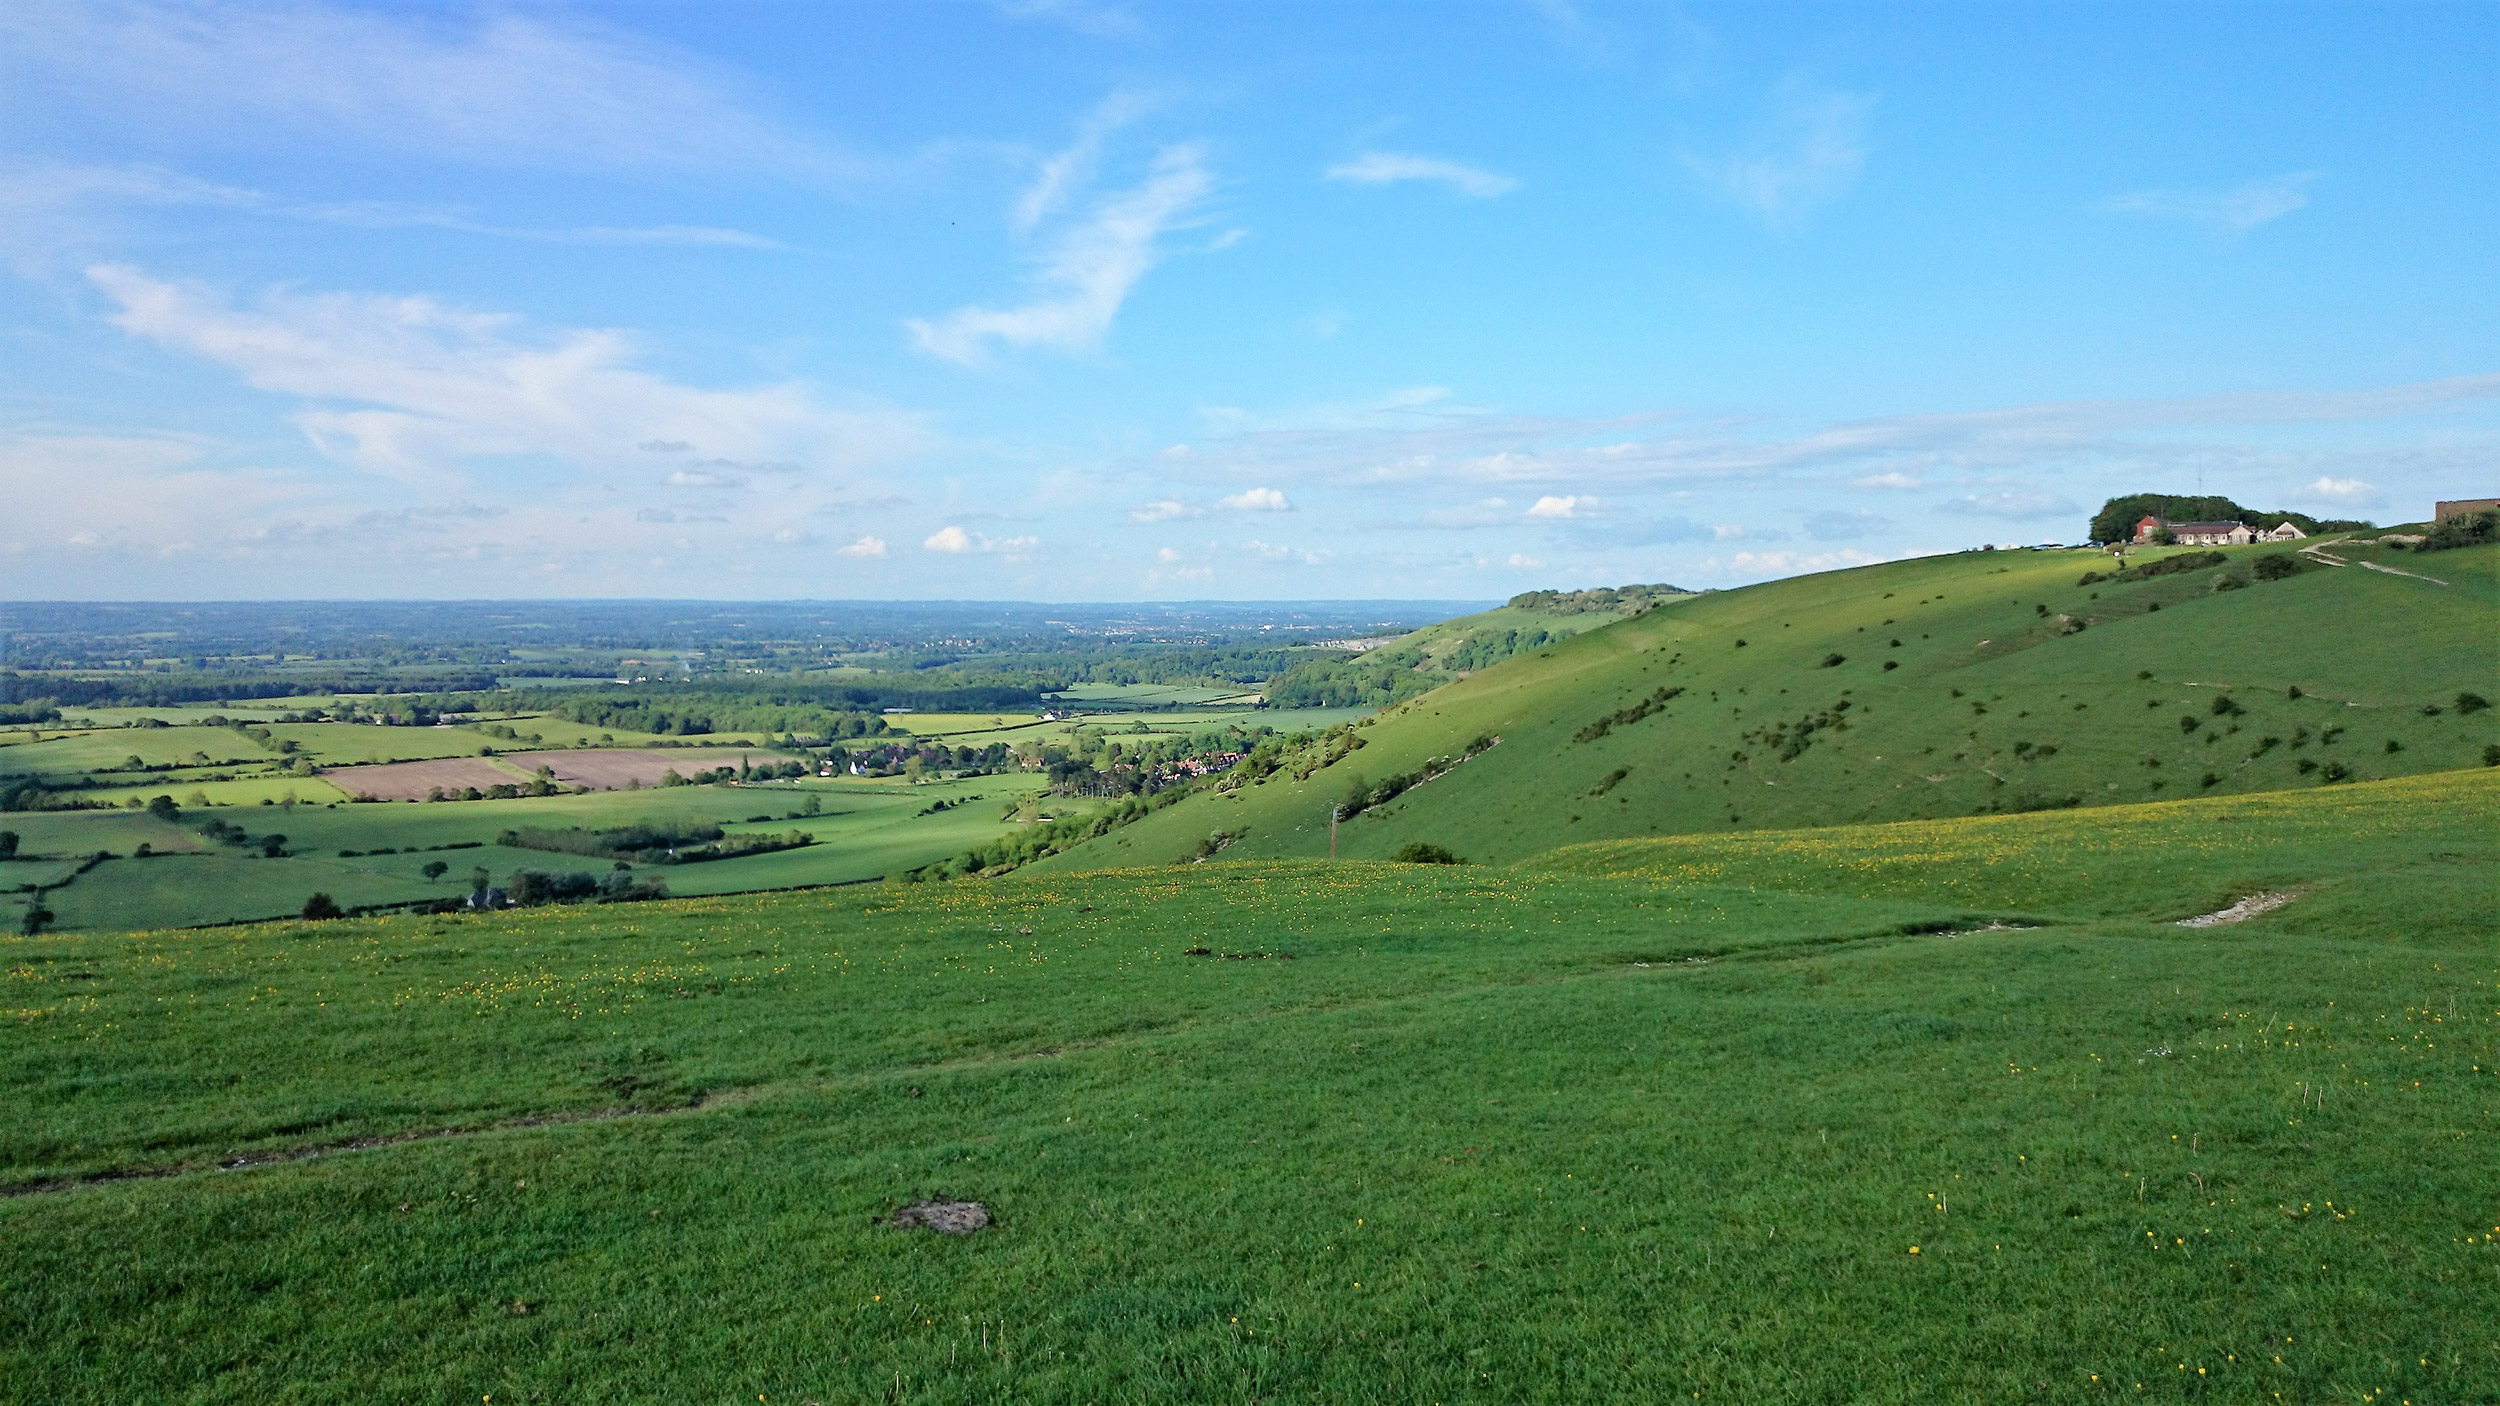 Countryside Code refresh – have your say closes at 5pm on 11 January 2021